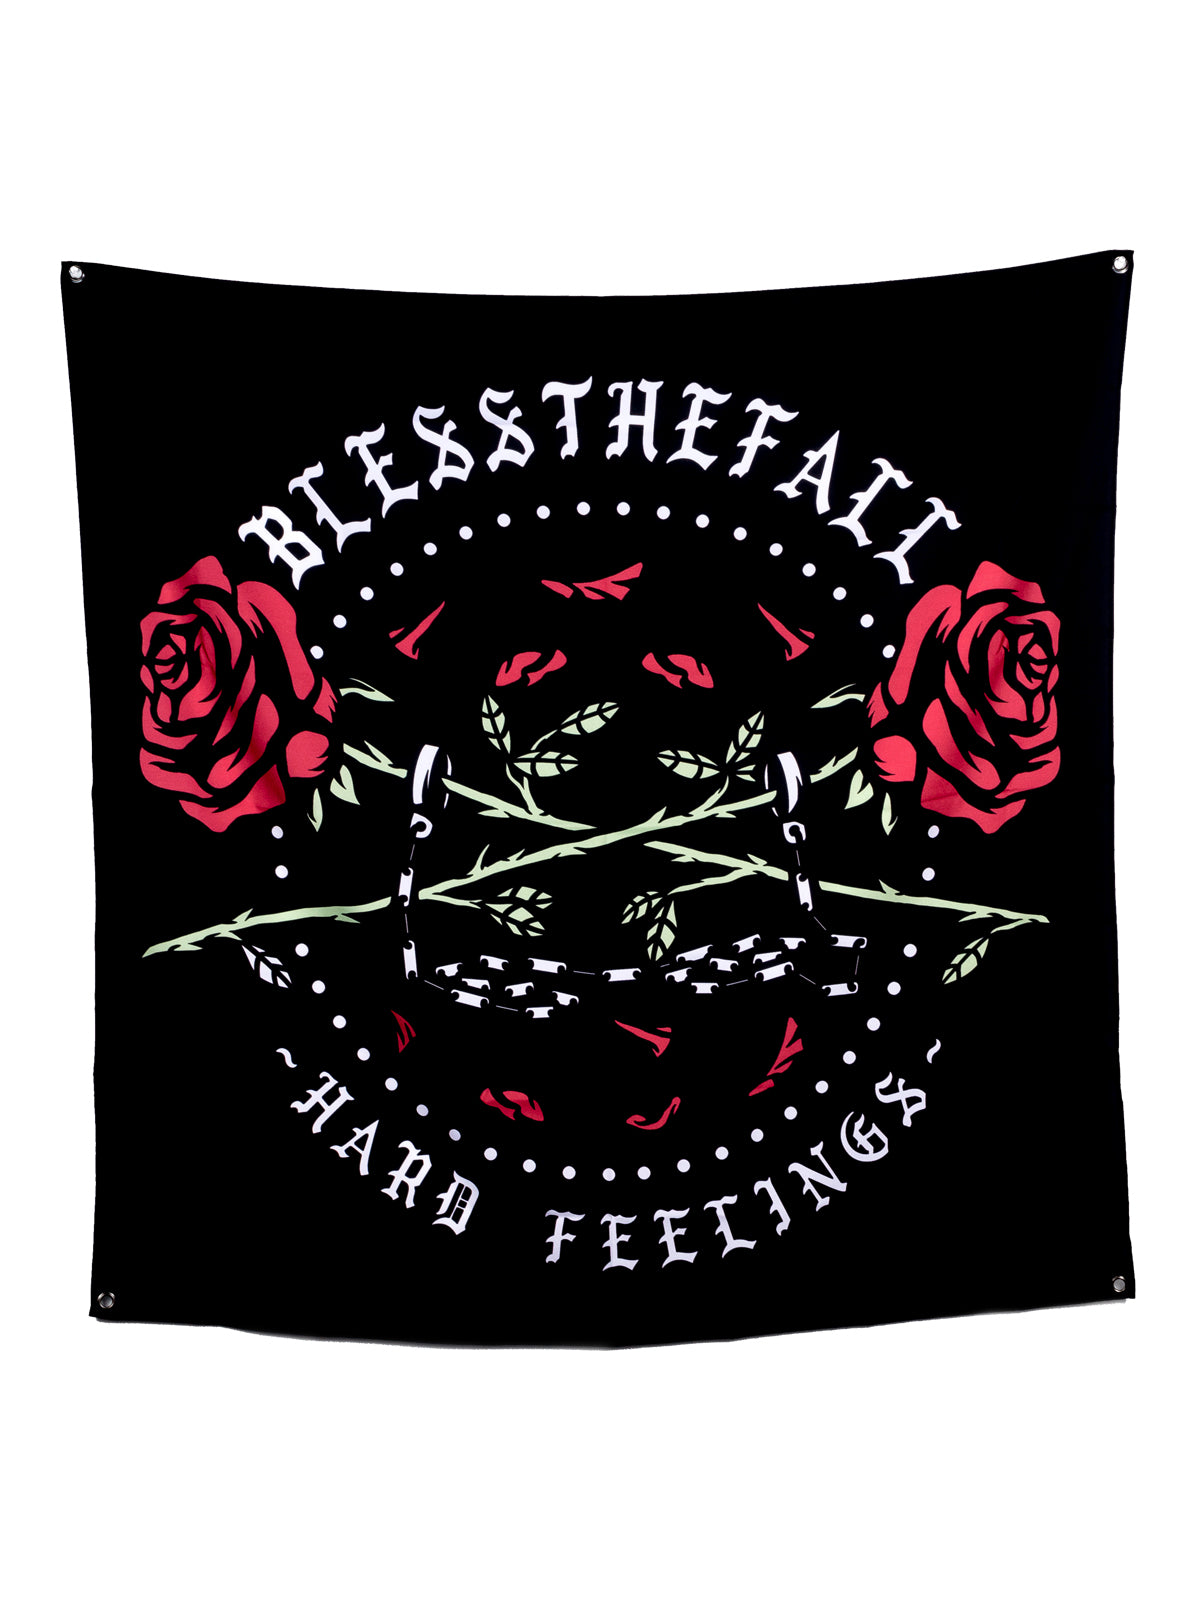 Blessthefall - Hard Feelings Wall Flag - Merch Limited